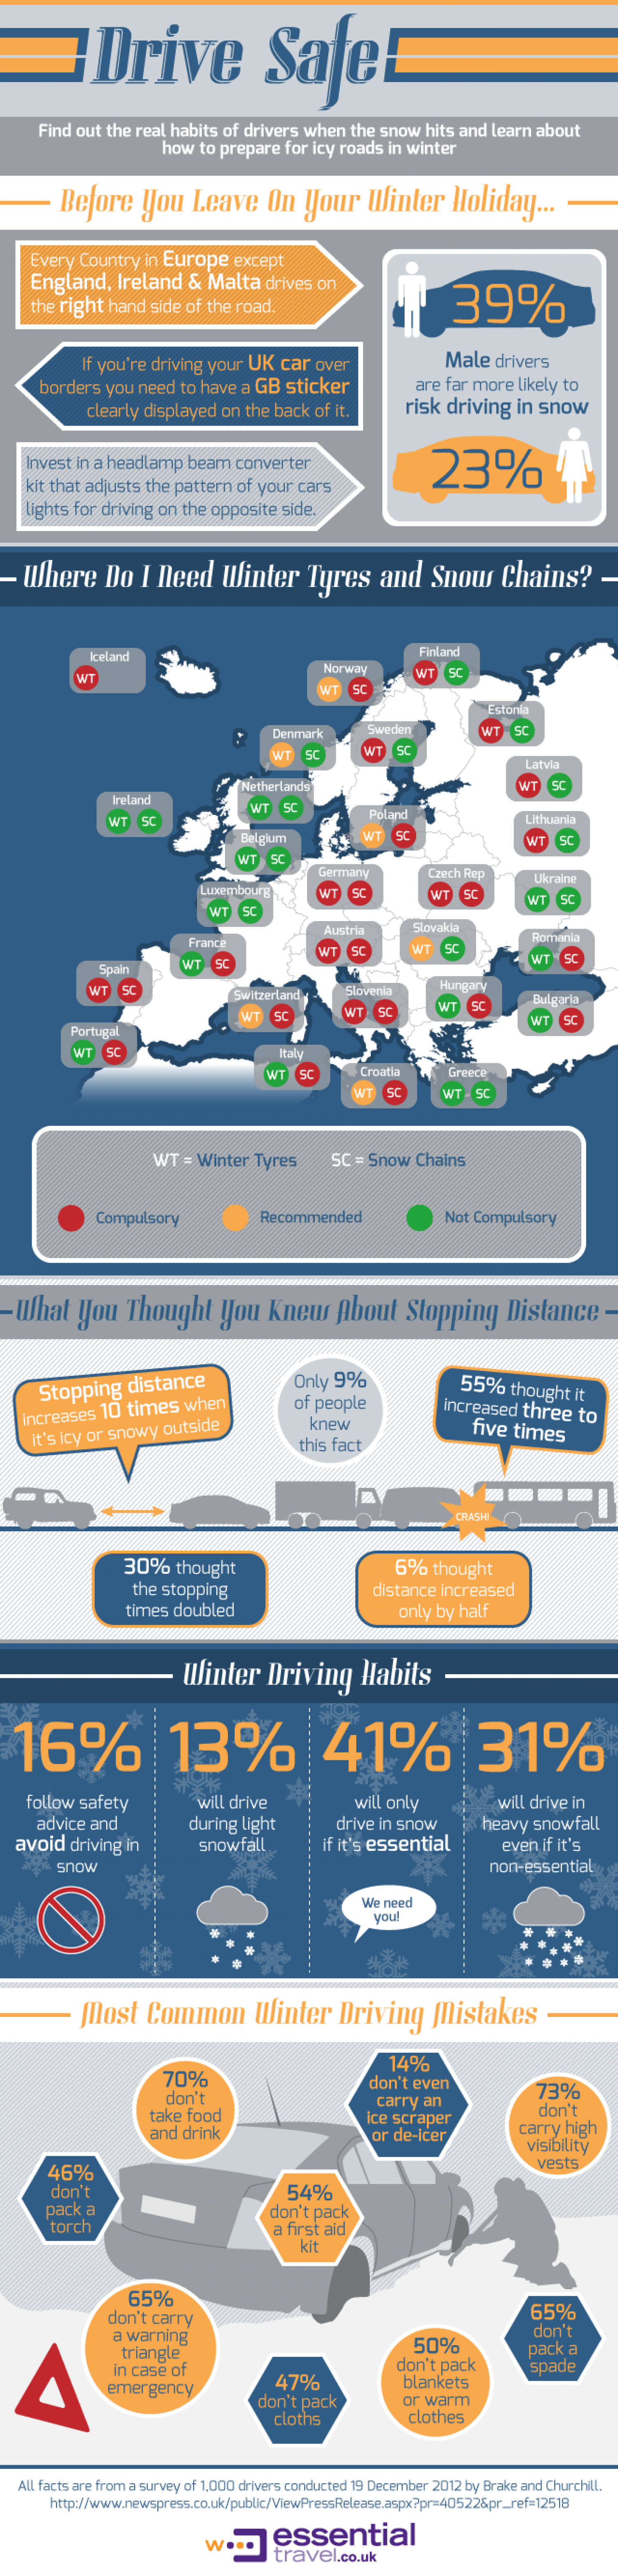 Be prepared for driving in winter Infographic